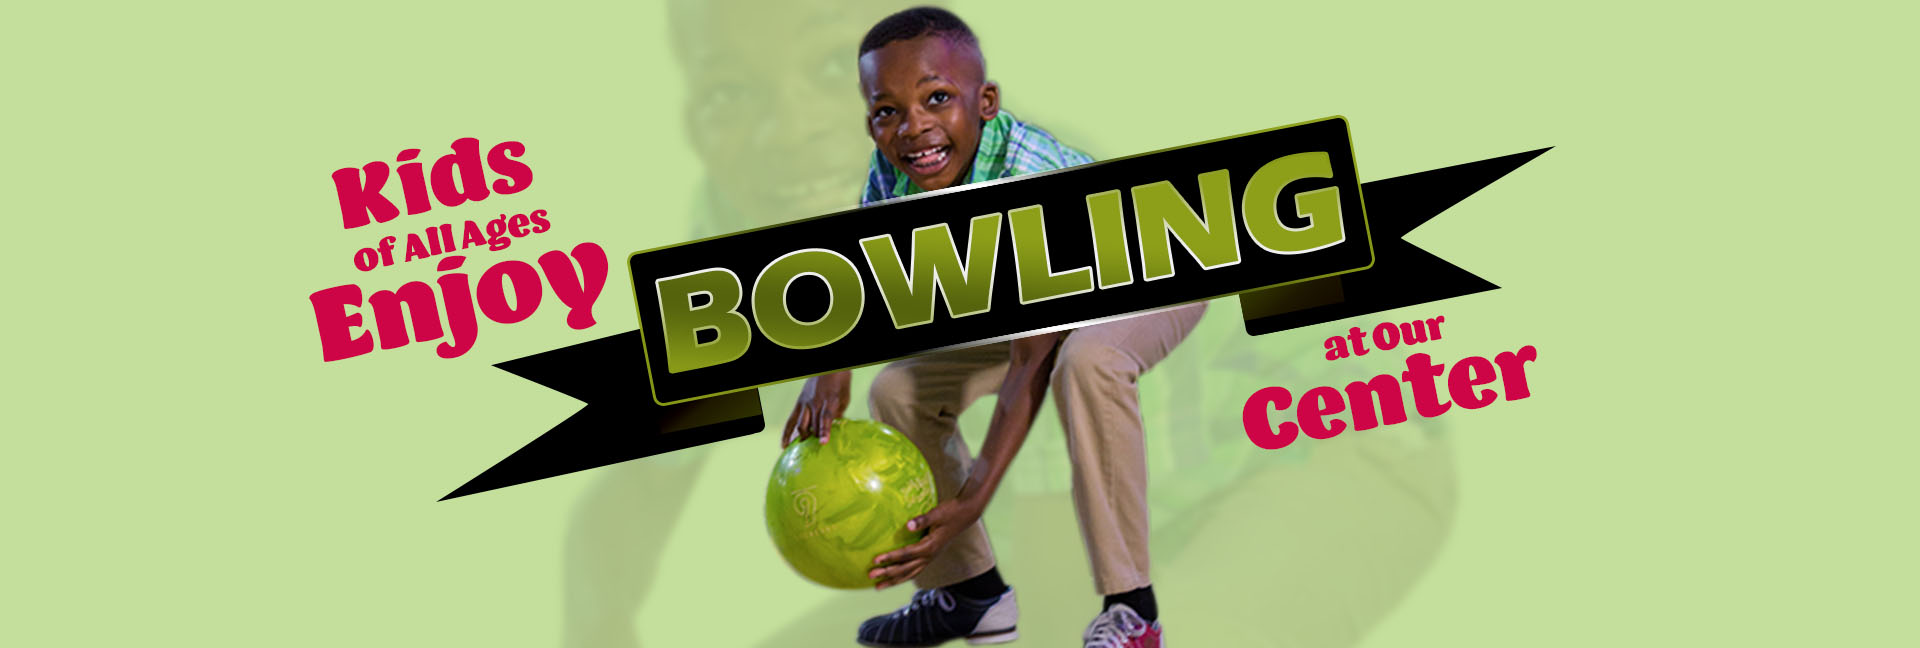 youth bowling banner